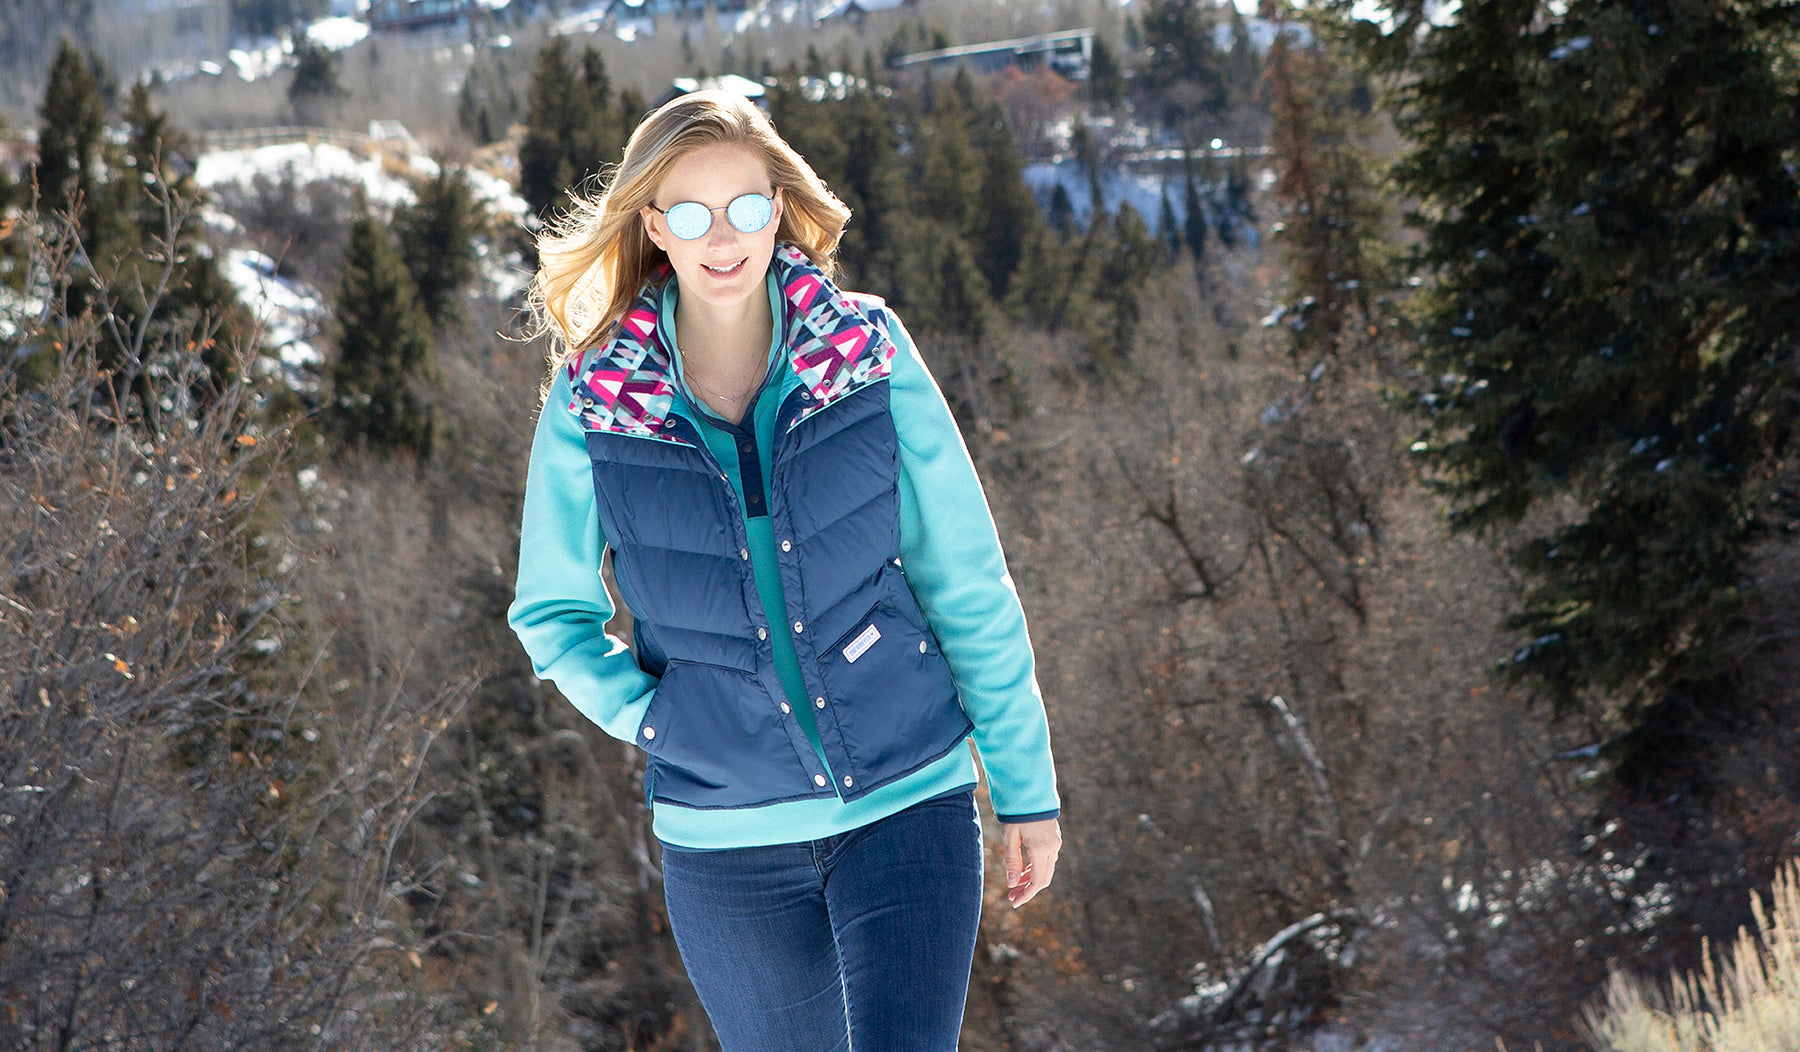 round metal sunglasses obermeyer ski vest outdoors hiking blue women ladies